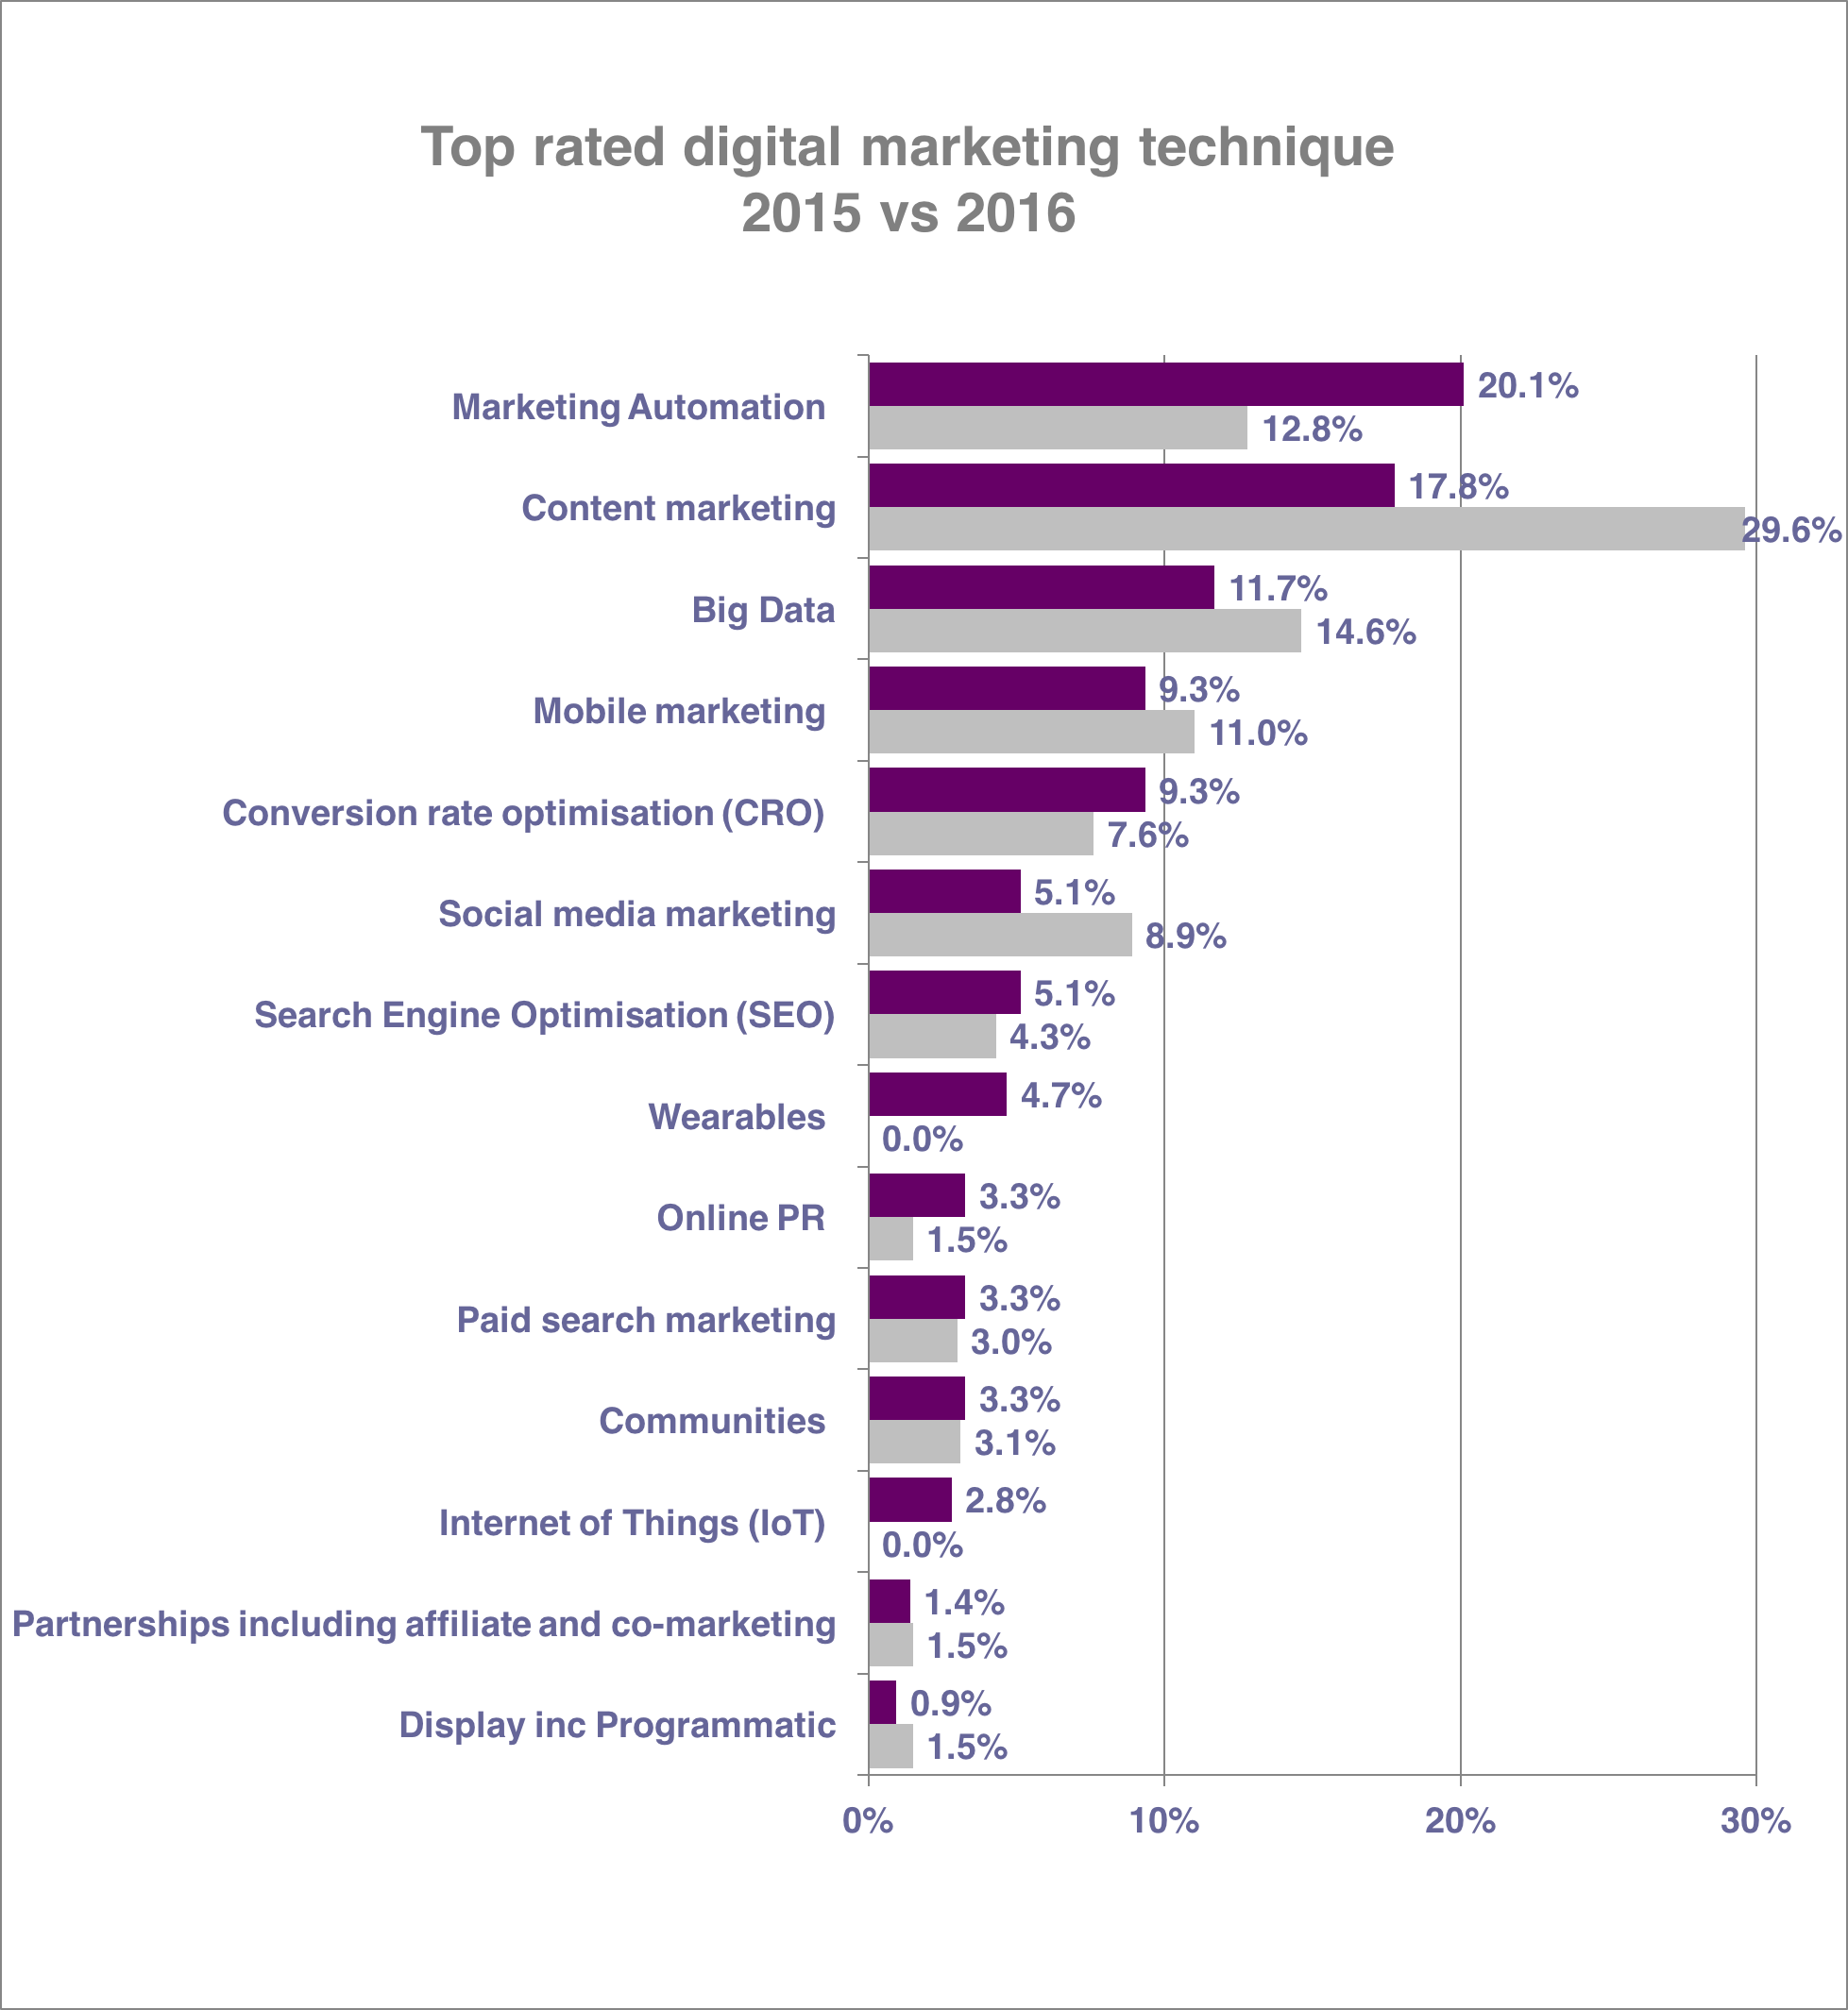 2016_Tendencias_de_MarketingDigital_Comparacion2015_1.png